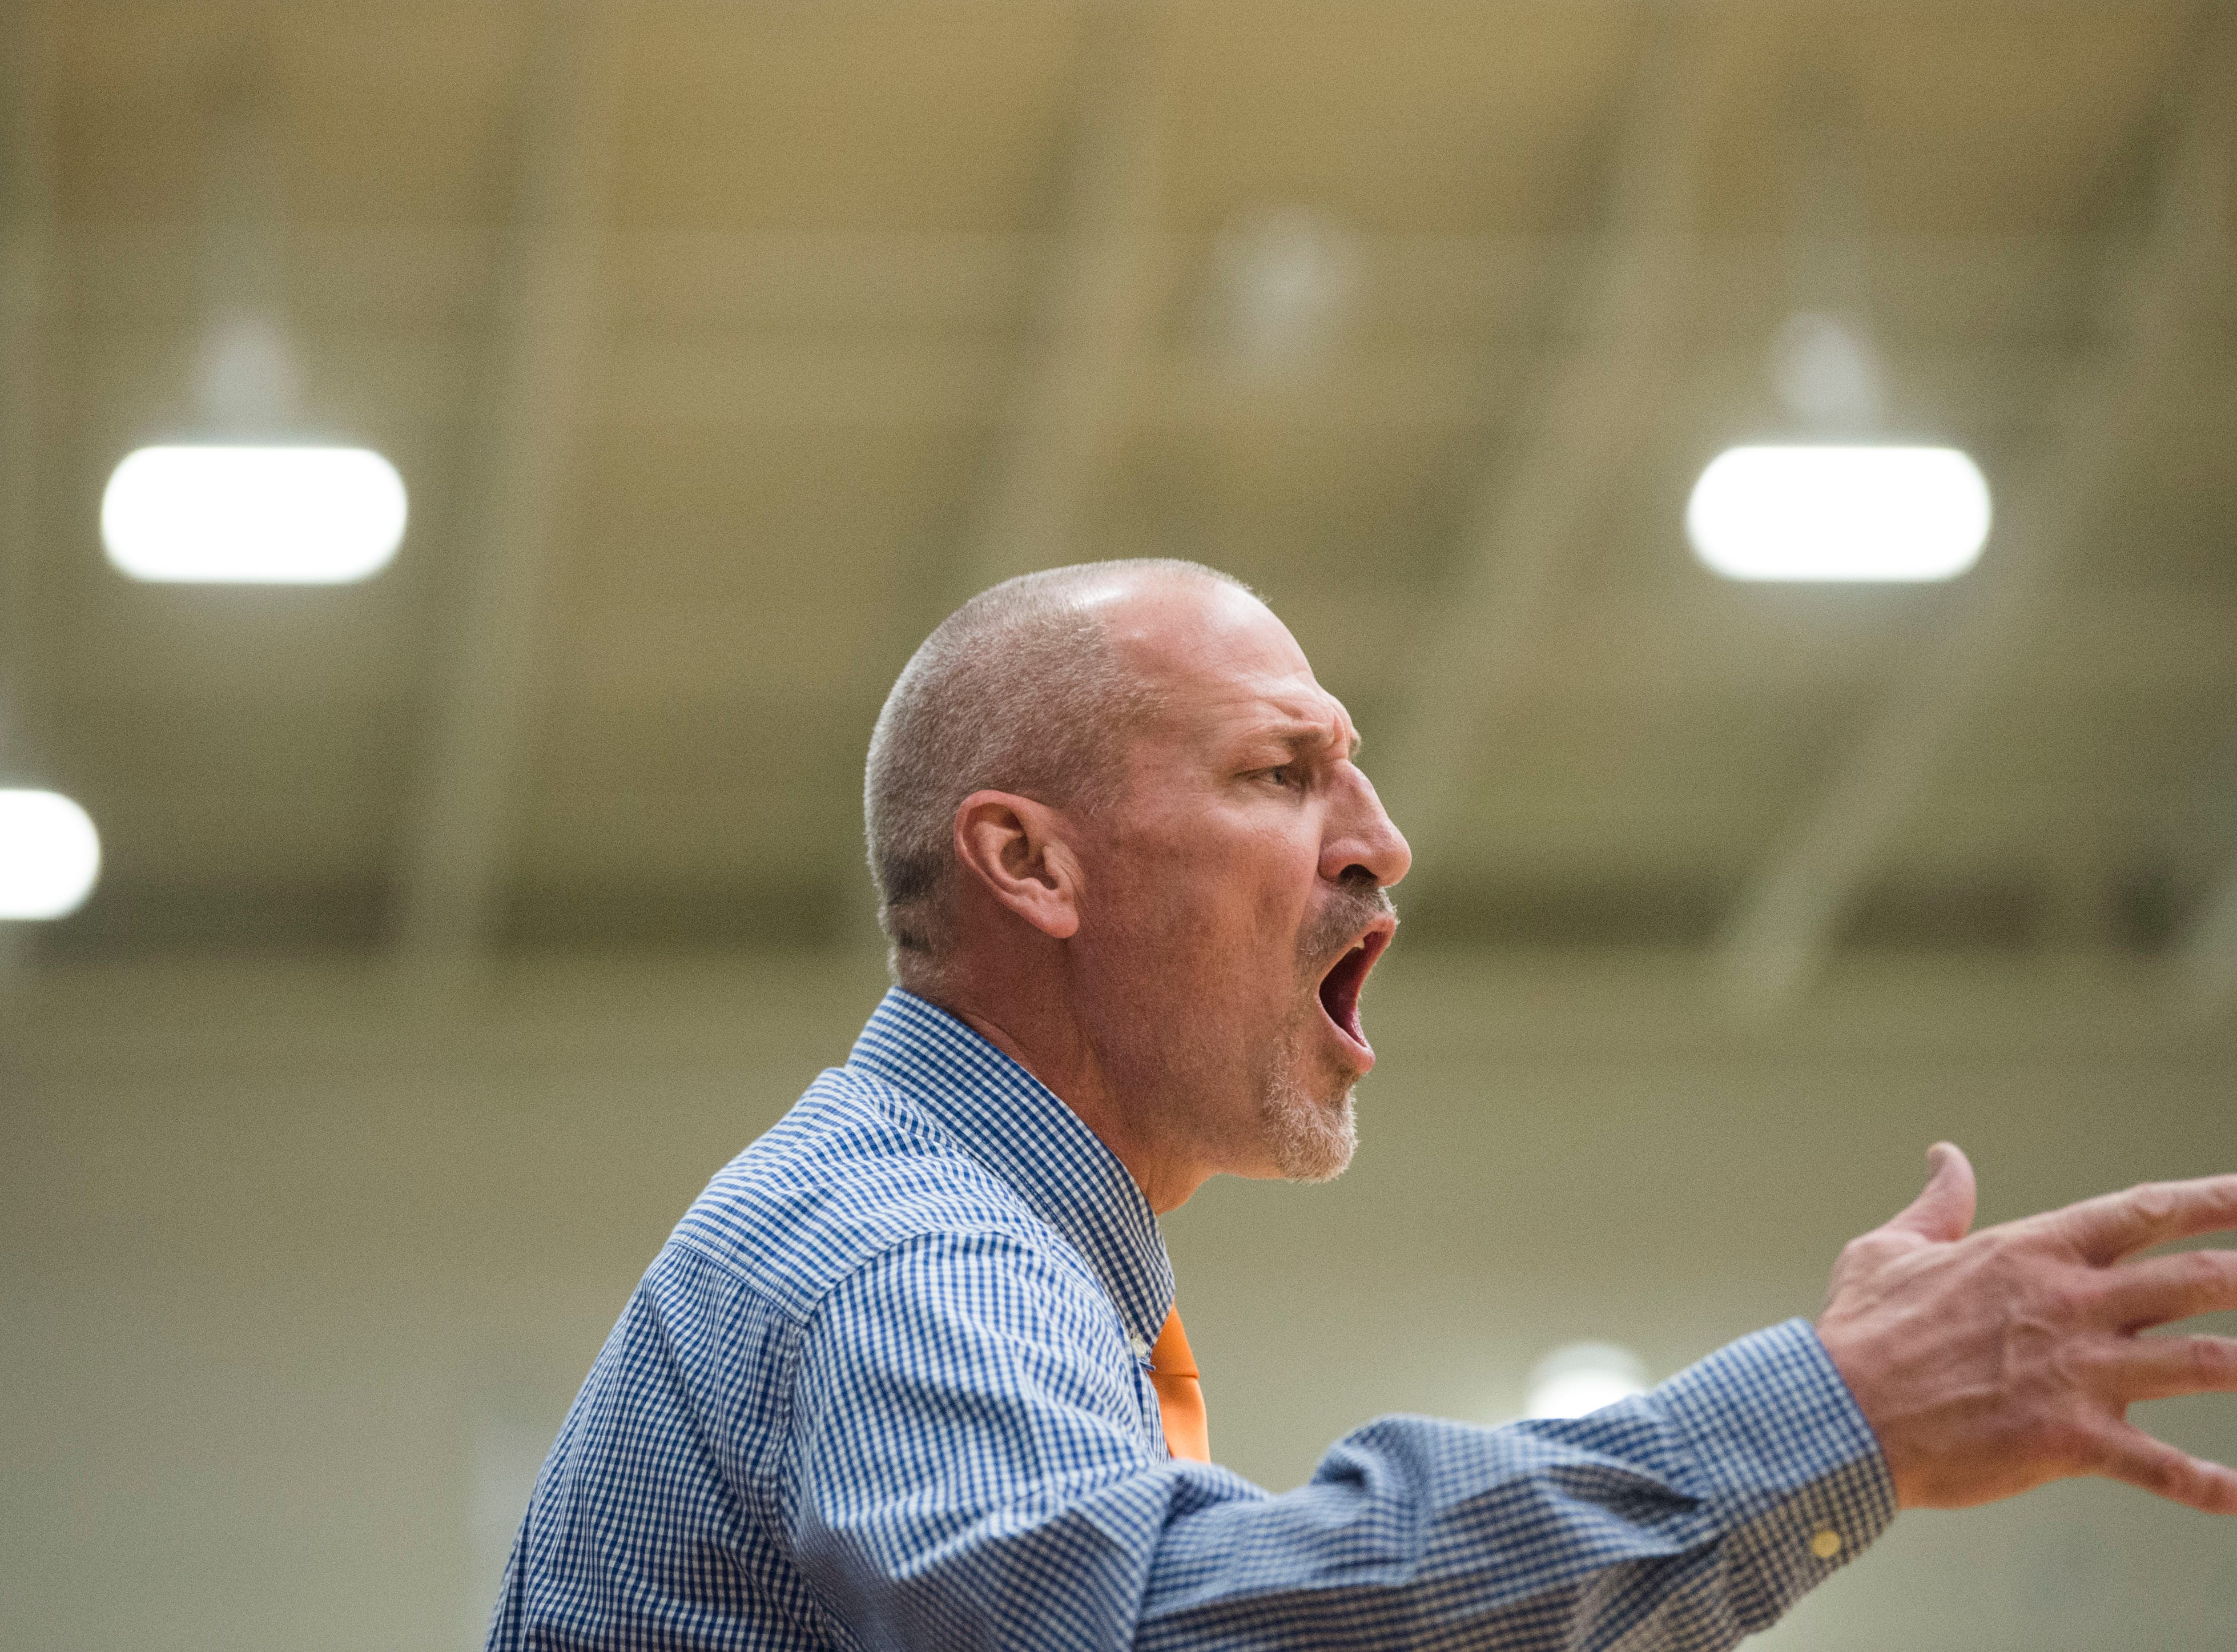 Campbell County's head coach Darrell Cox yells to the court during a high school basketball game between Oak Ridge and Campbell County at Oak Ridge Friday, Feb. 1, 2019.